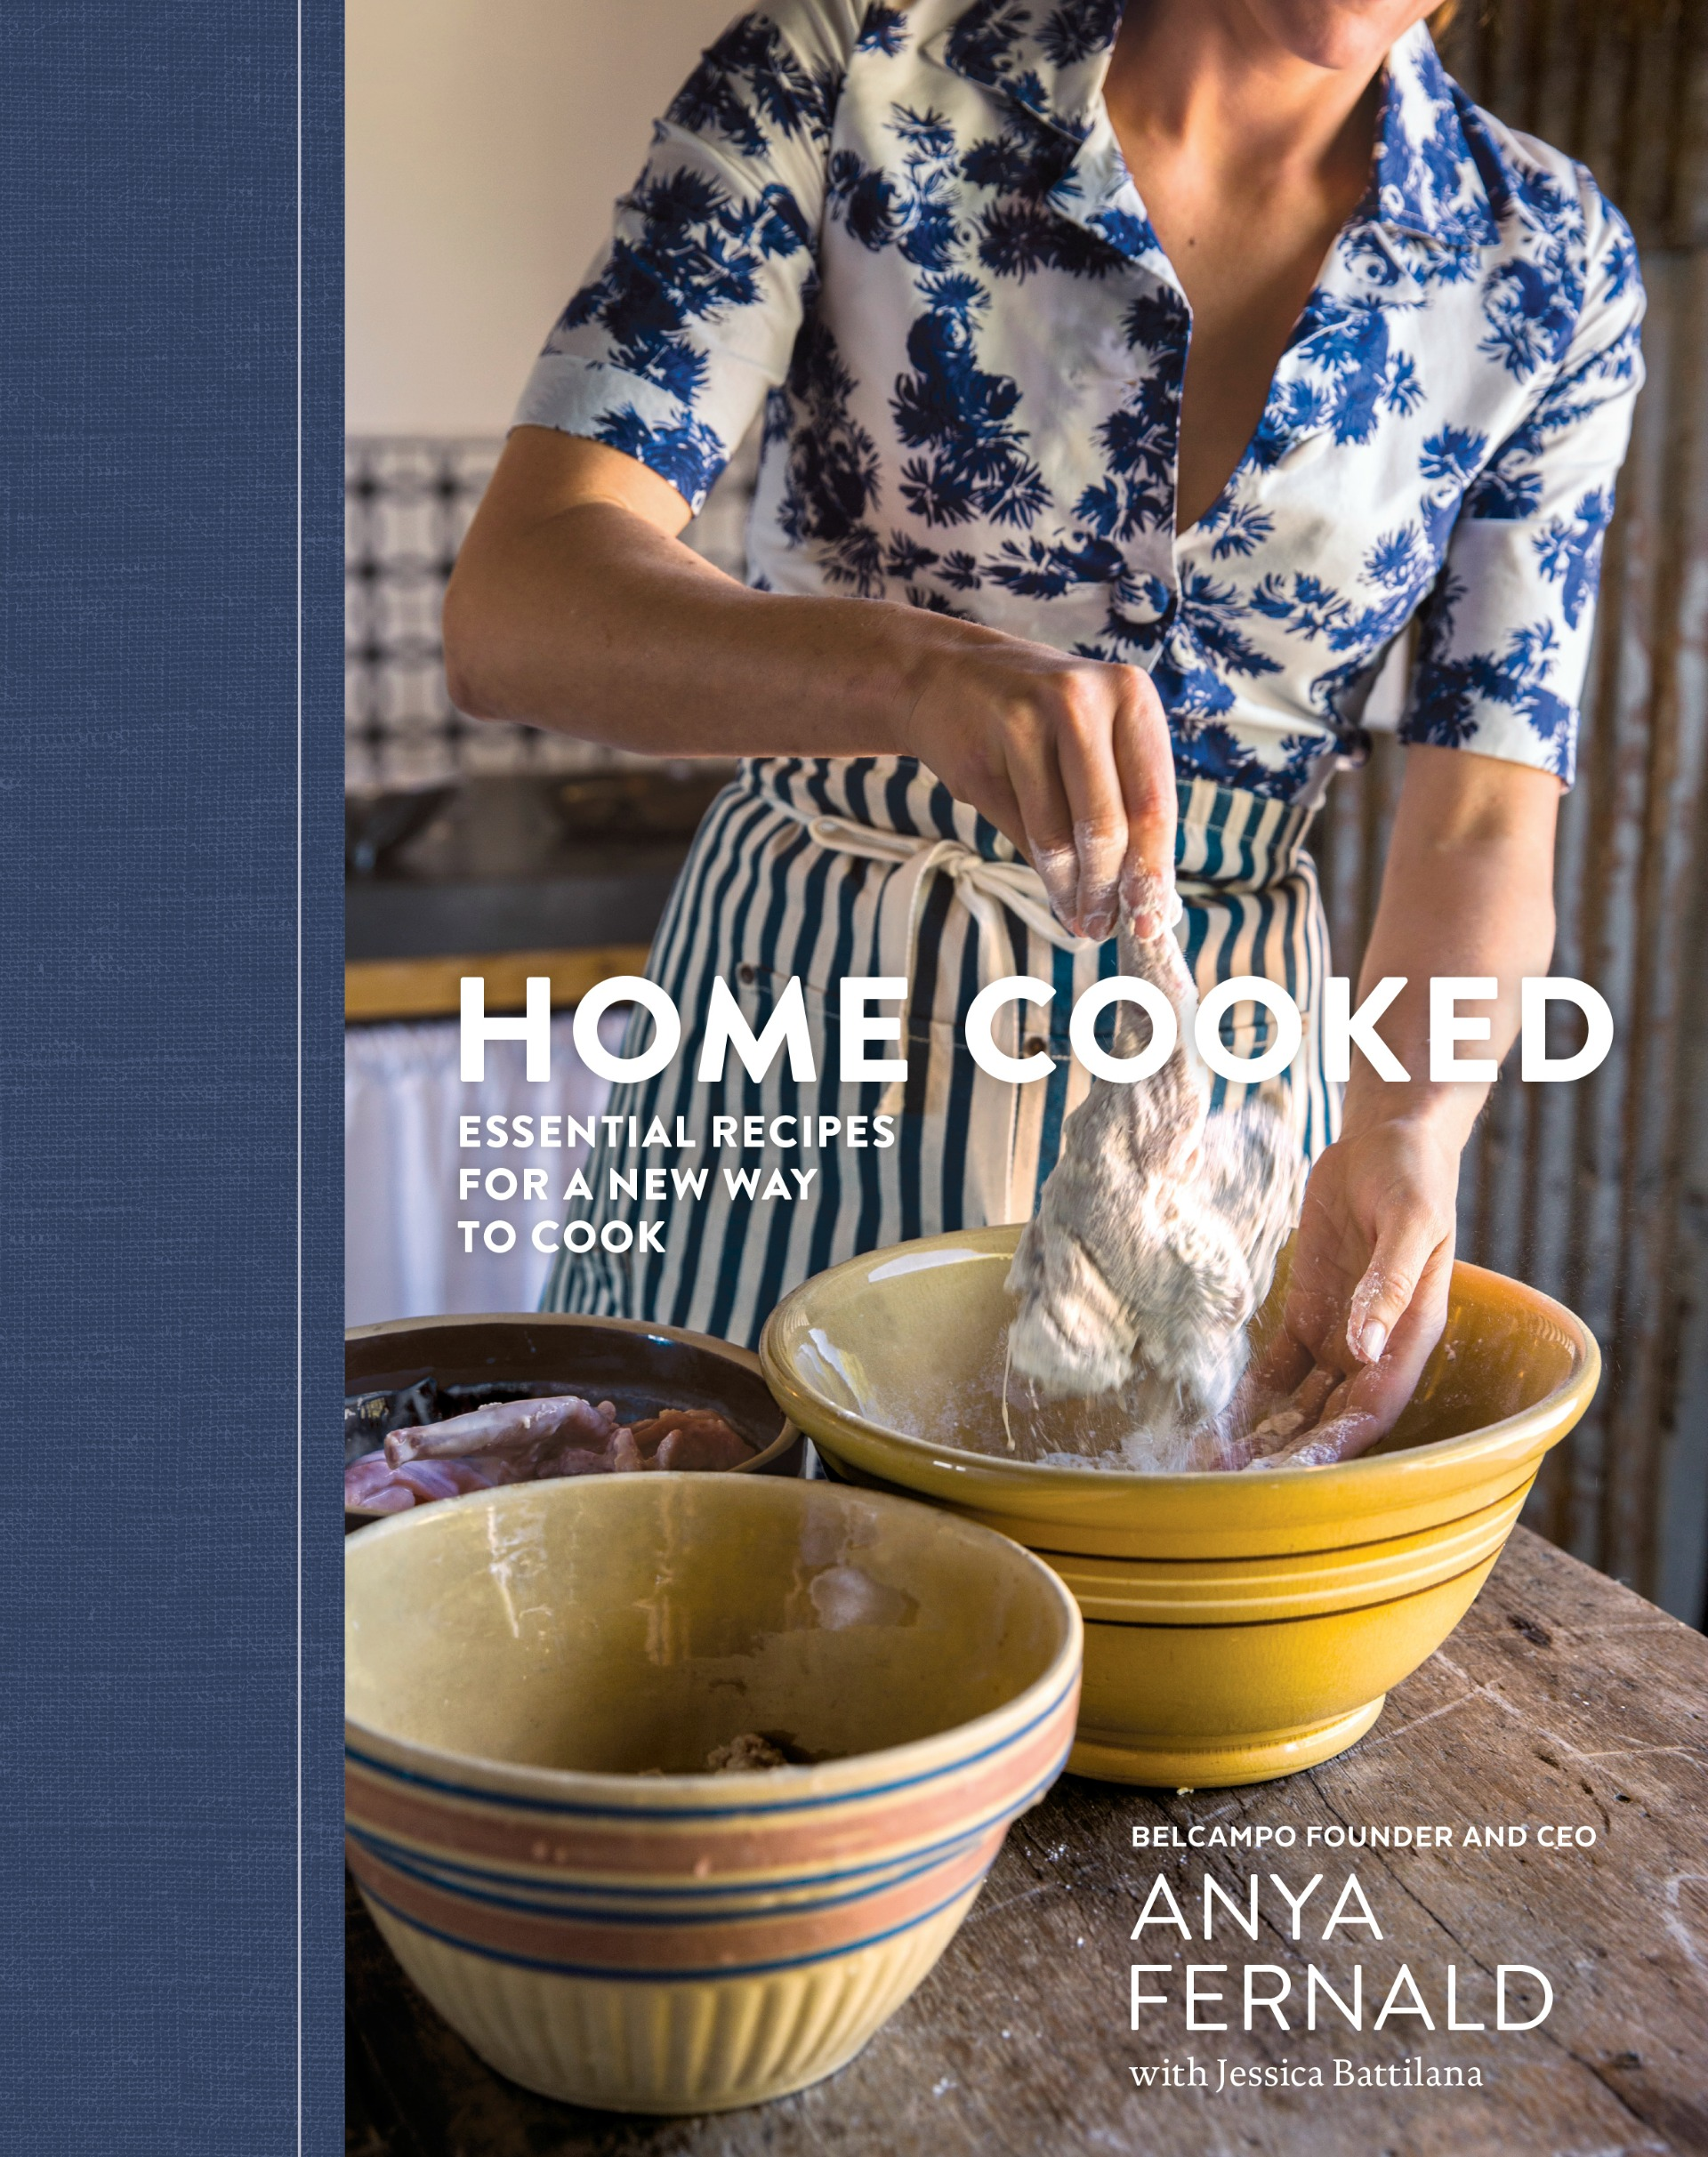 Home Cooked: Essential Recipes for a New Way to Cook Kindle Edition by Anya Fernald.